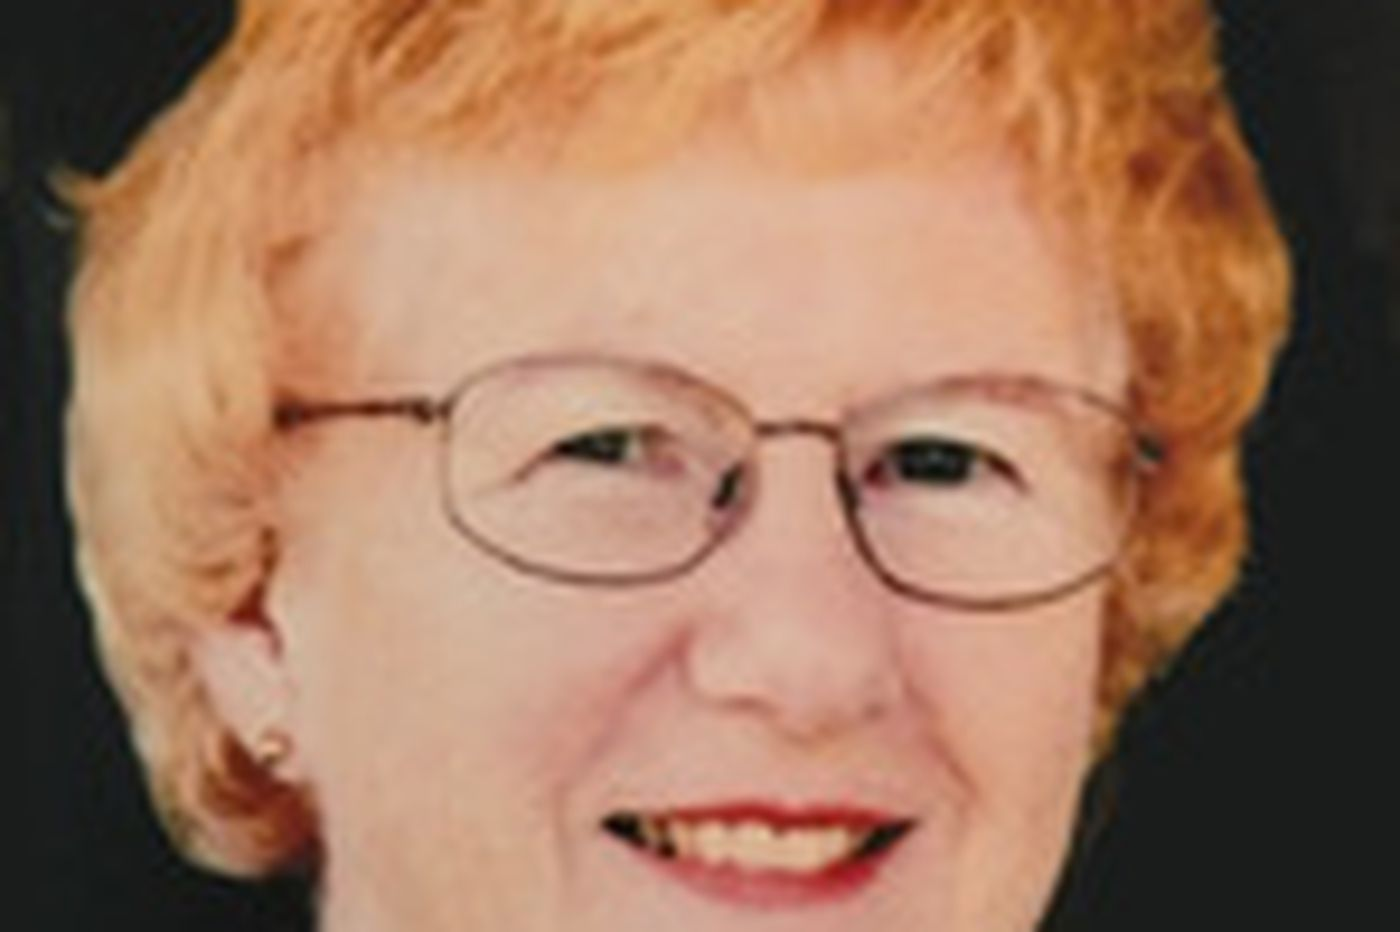 Carol P. Germain, 86, educator and innovative researcher at Penn's Nursing School